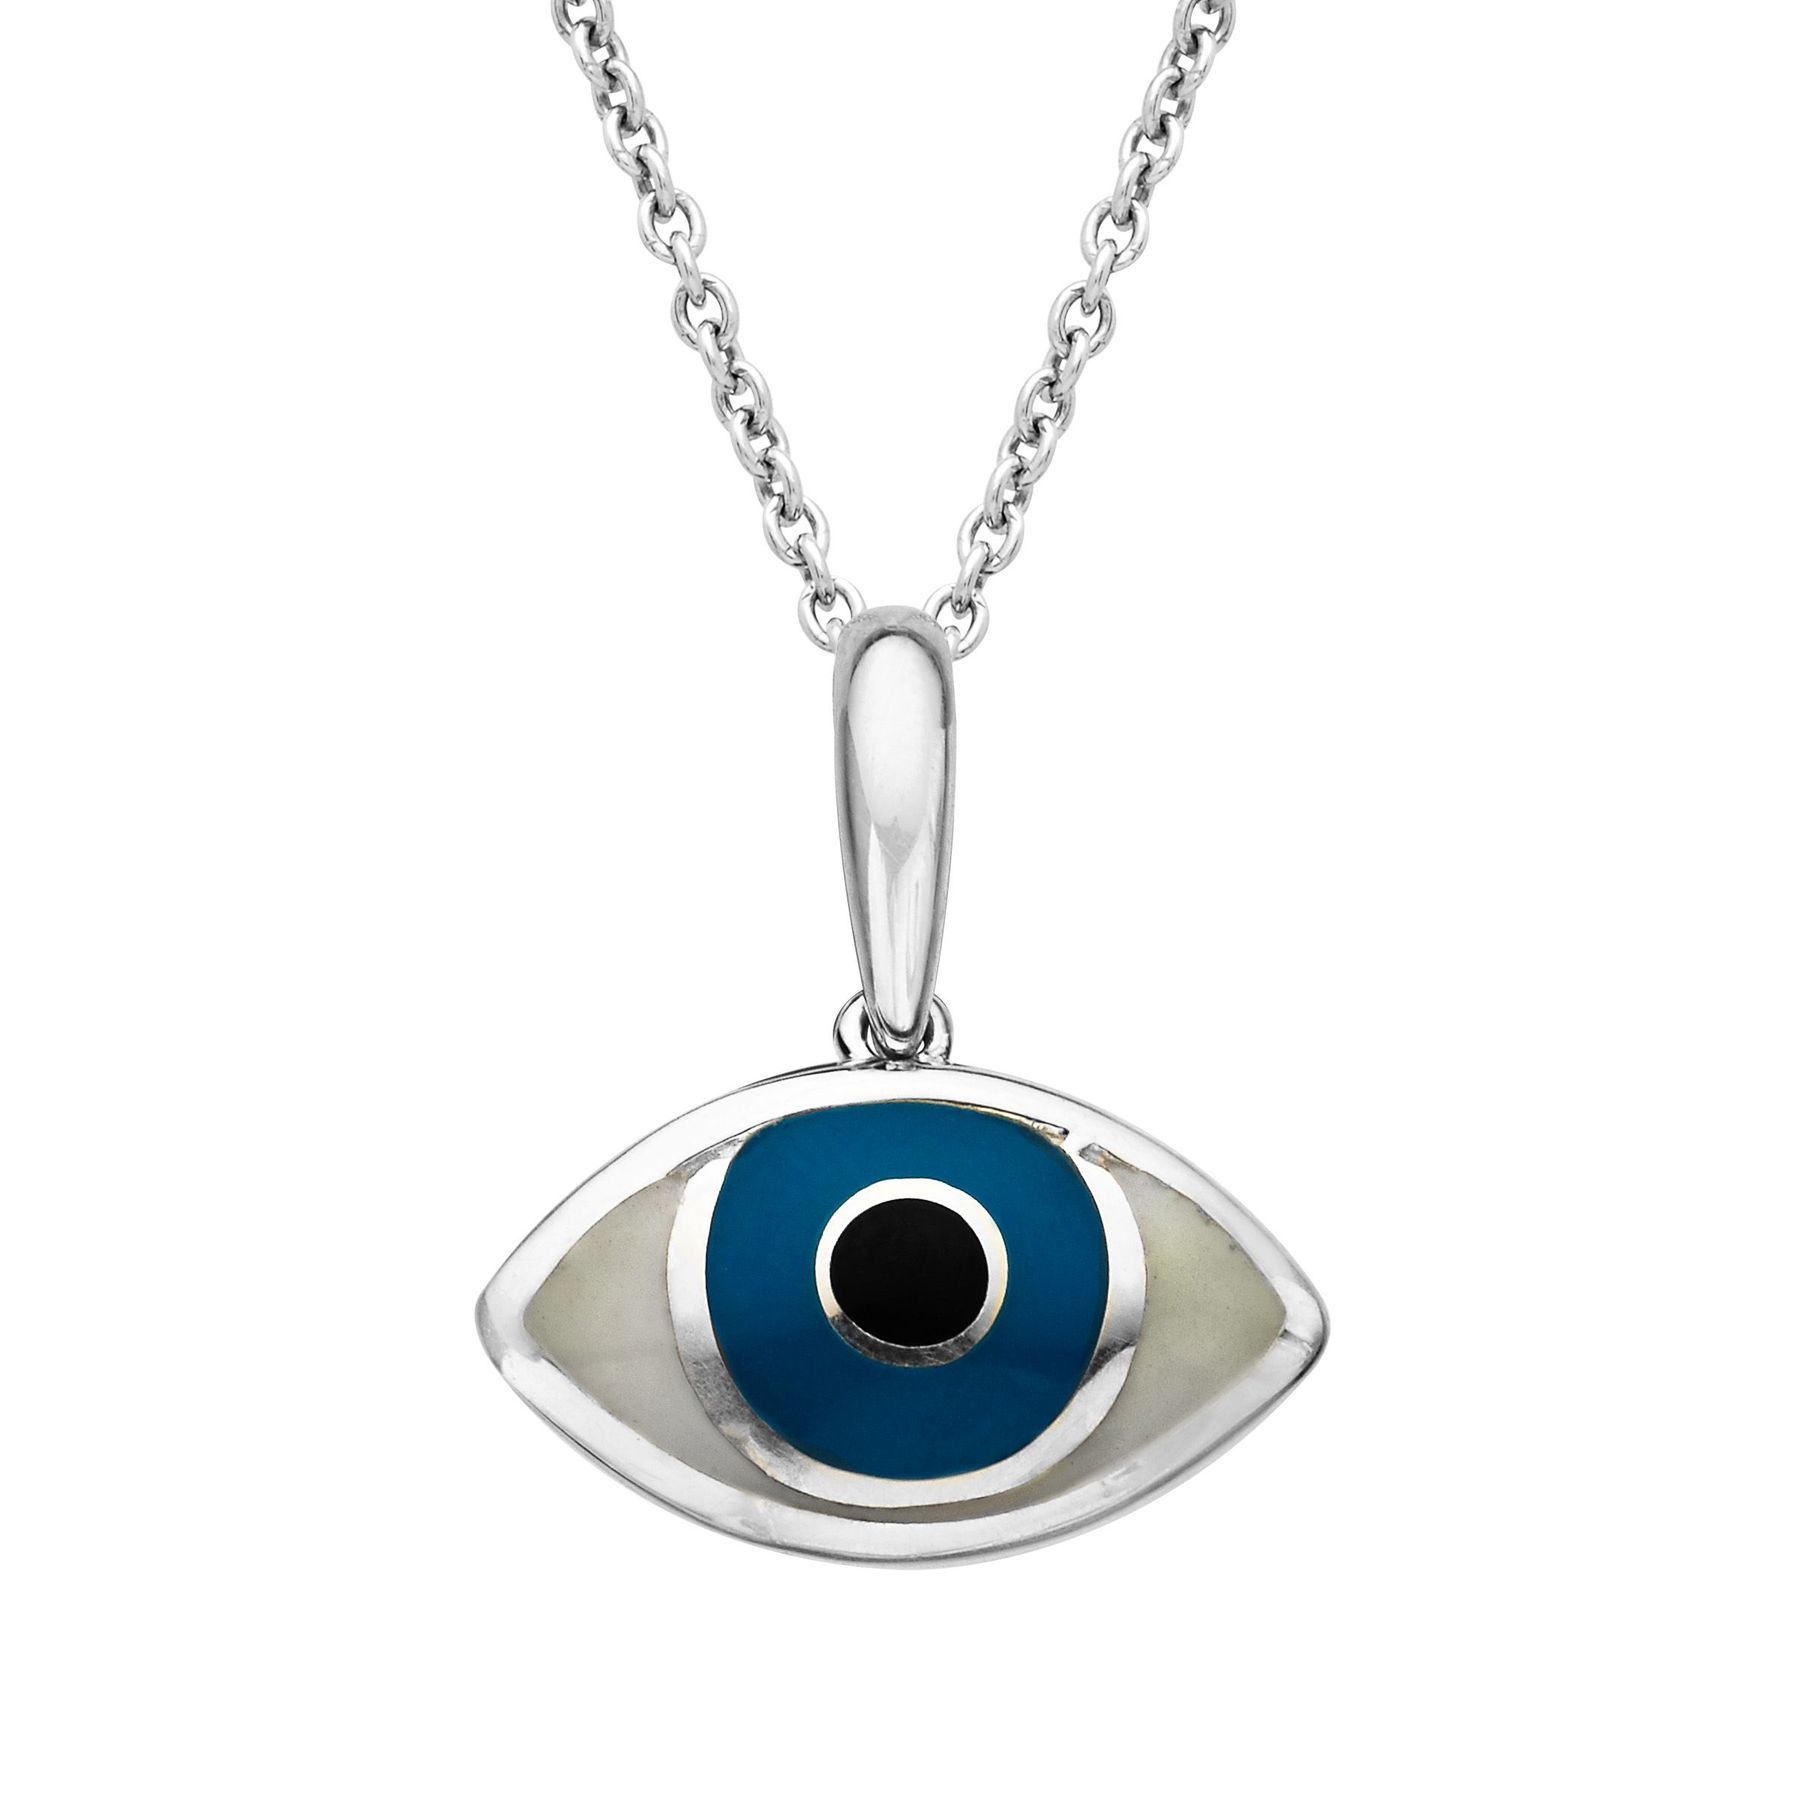 p pendant madewell pdp enlarge seeing shopmadewell necklaces women necklace jewelry eye